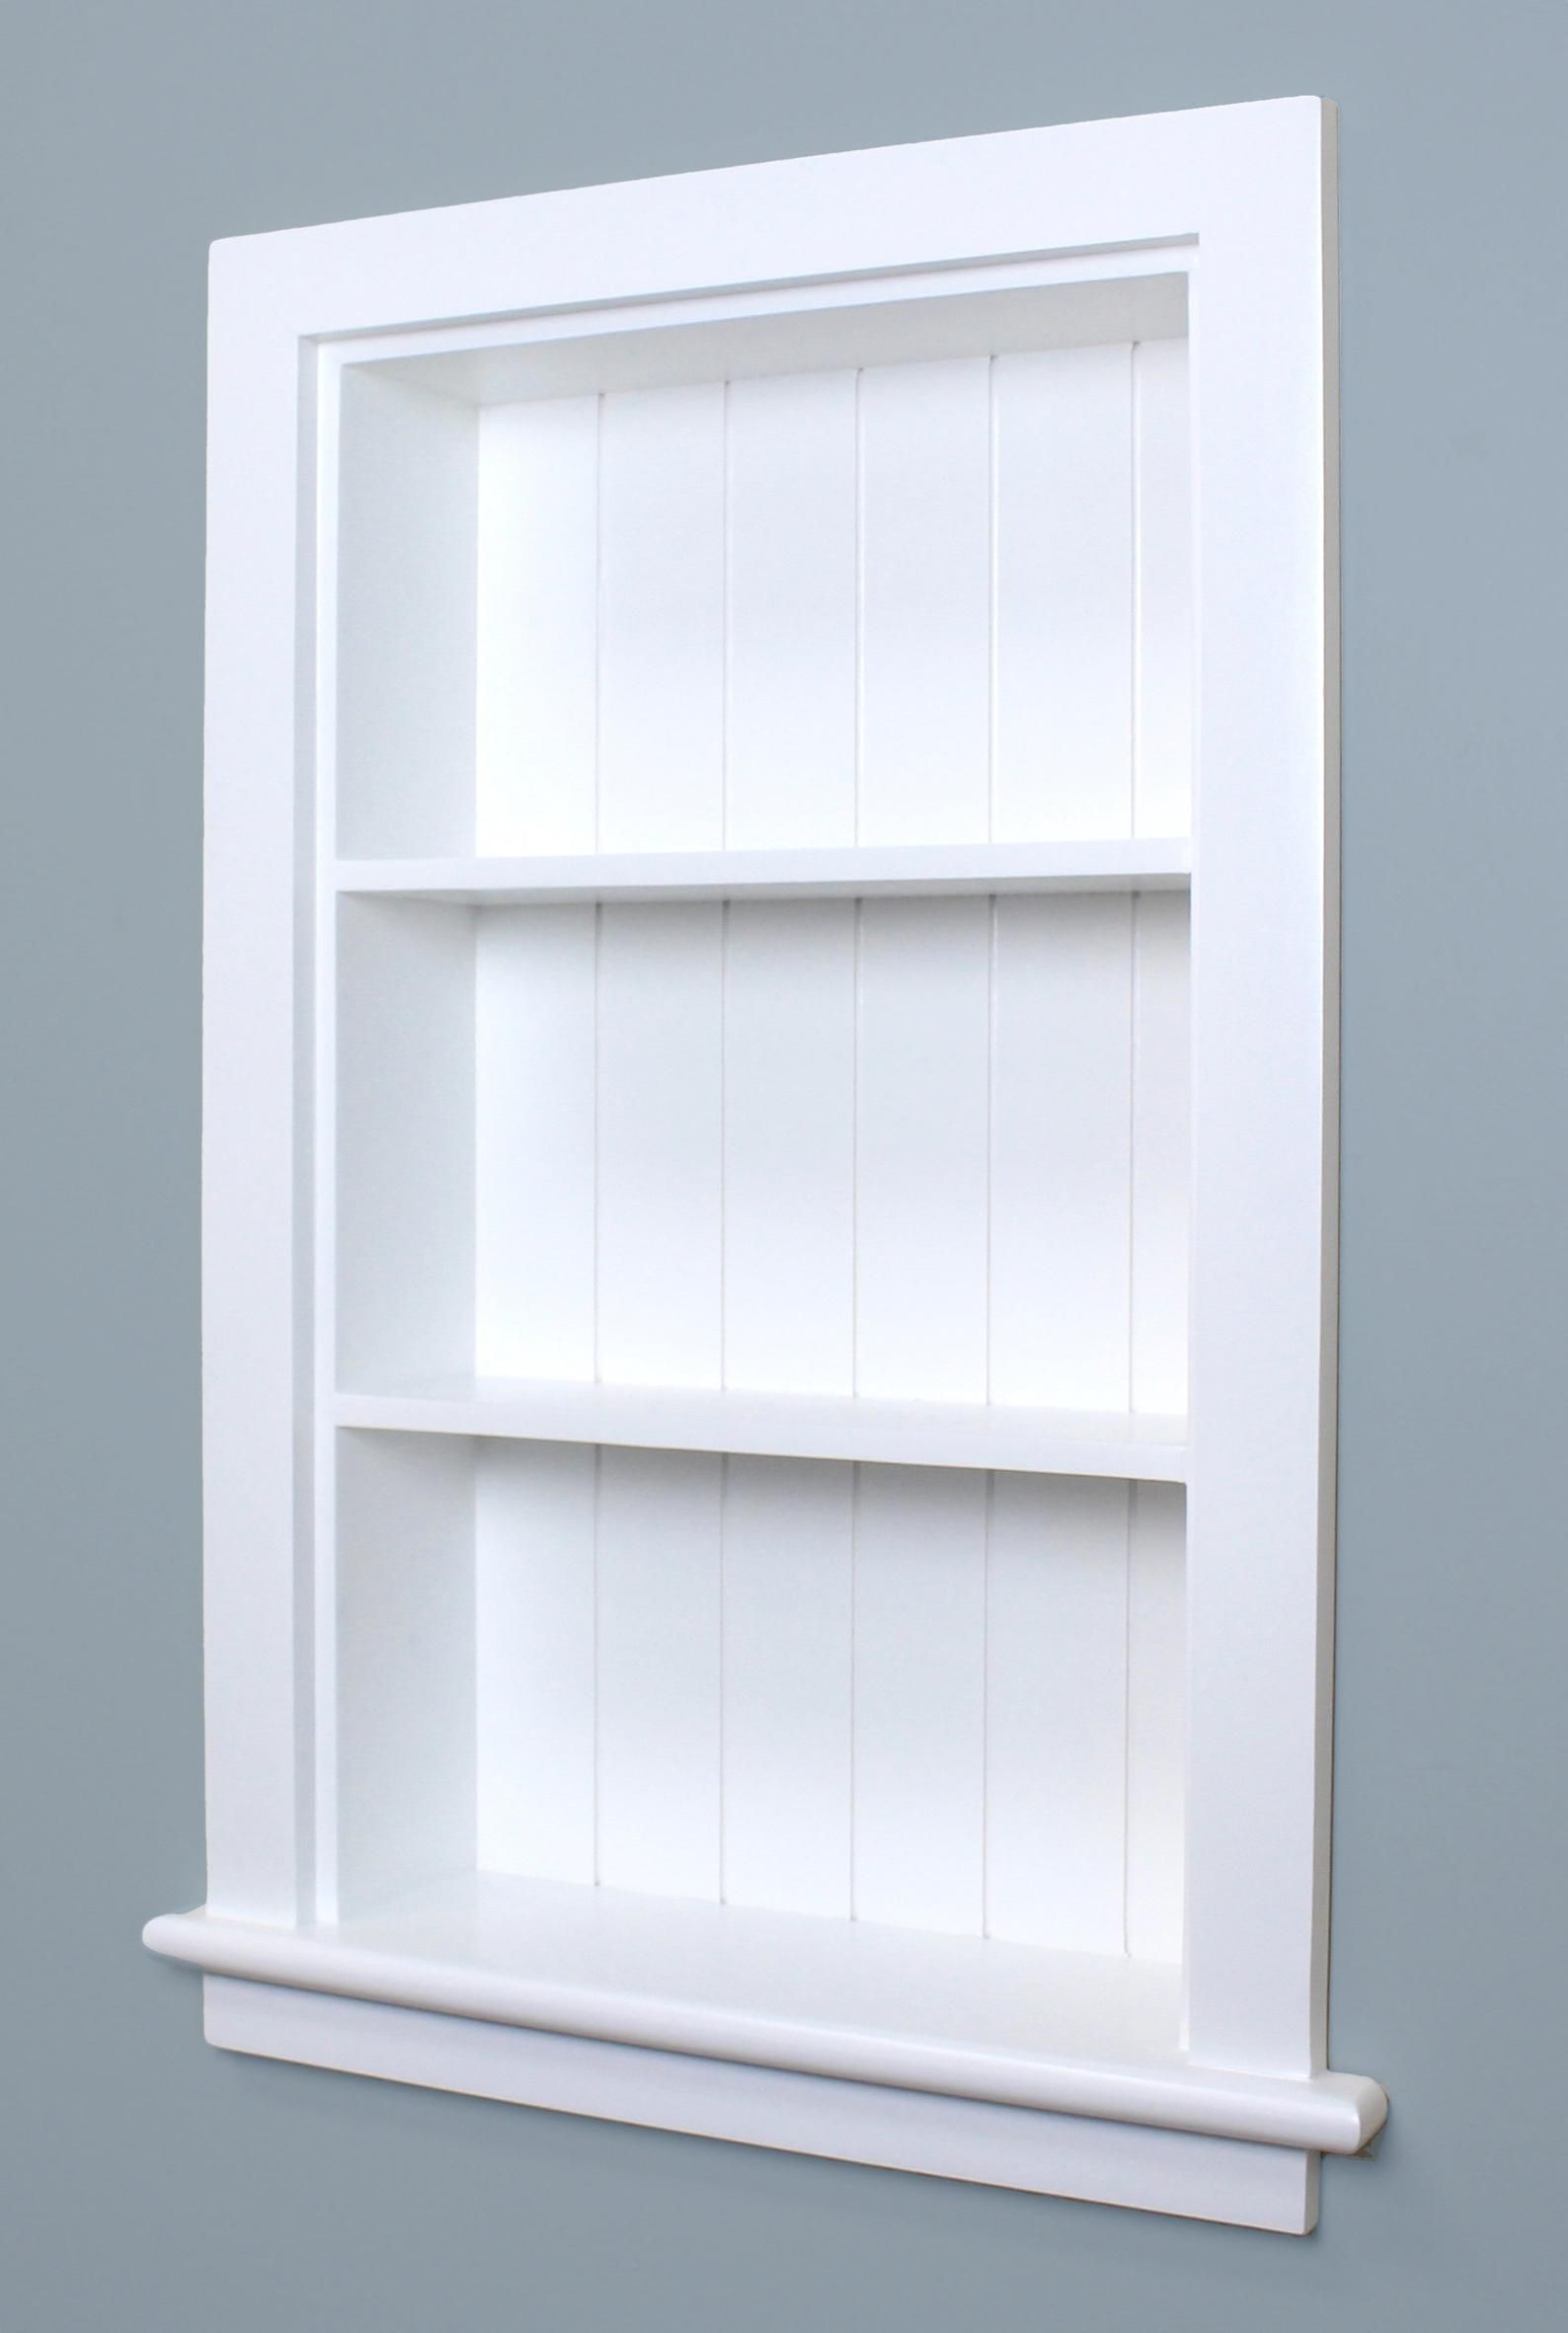 14x24 Recessed Aiden Wall Niche By Fox Hollow Furnishings Etsy Wall Niche Recessed Wall Niche Recessed Wall 14 x 24 recessed medicine cabinet